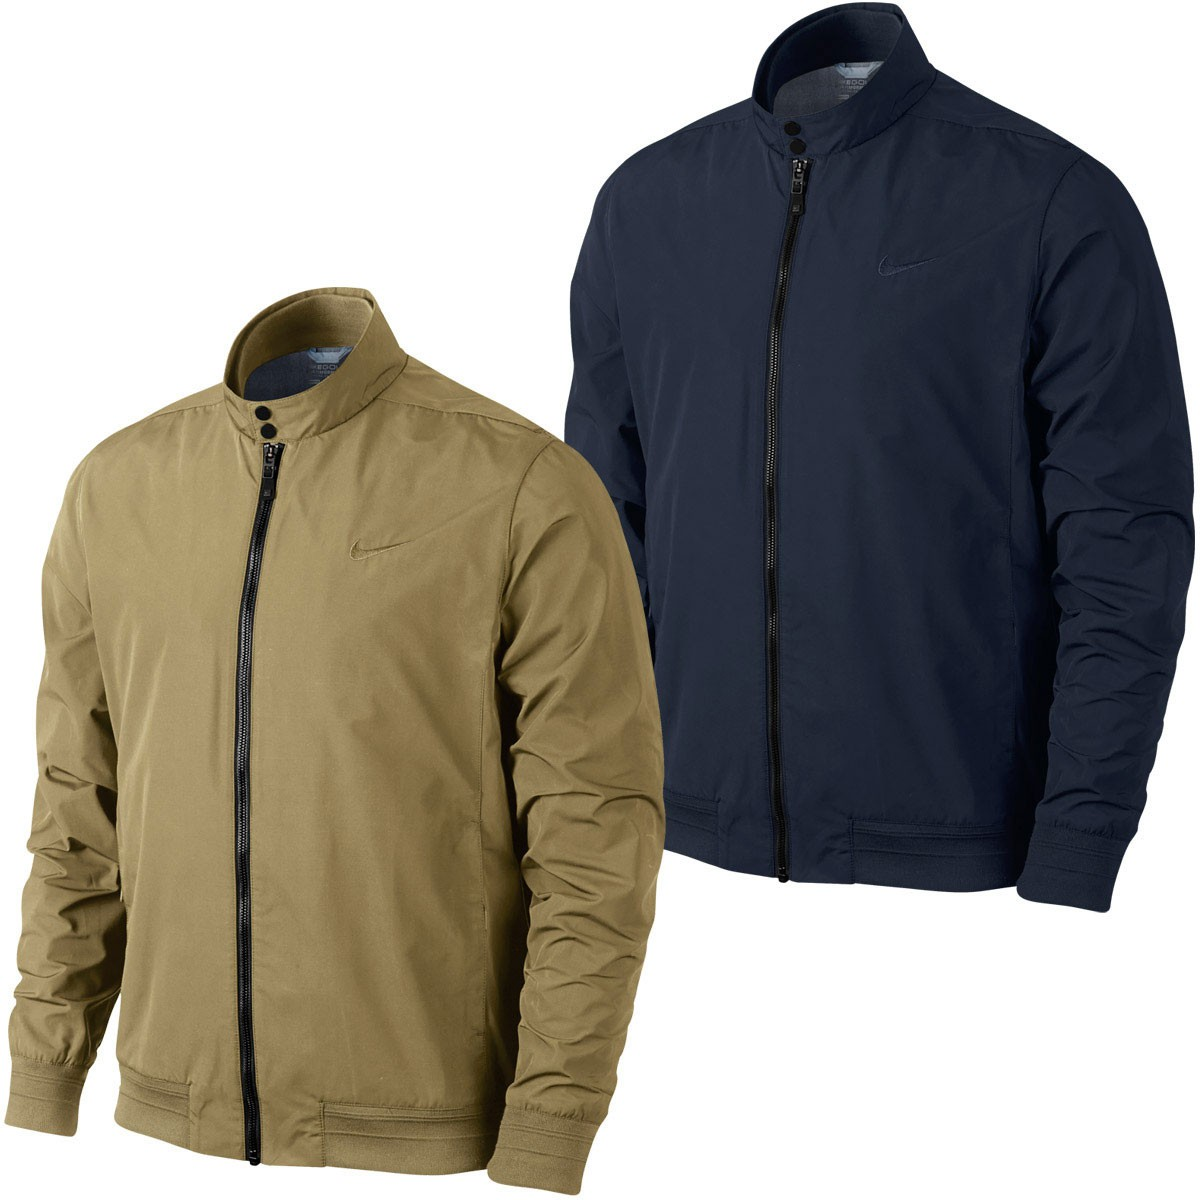 Nike harrington jacket